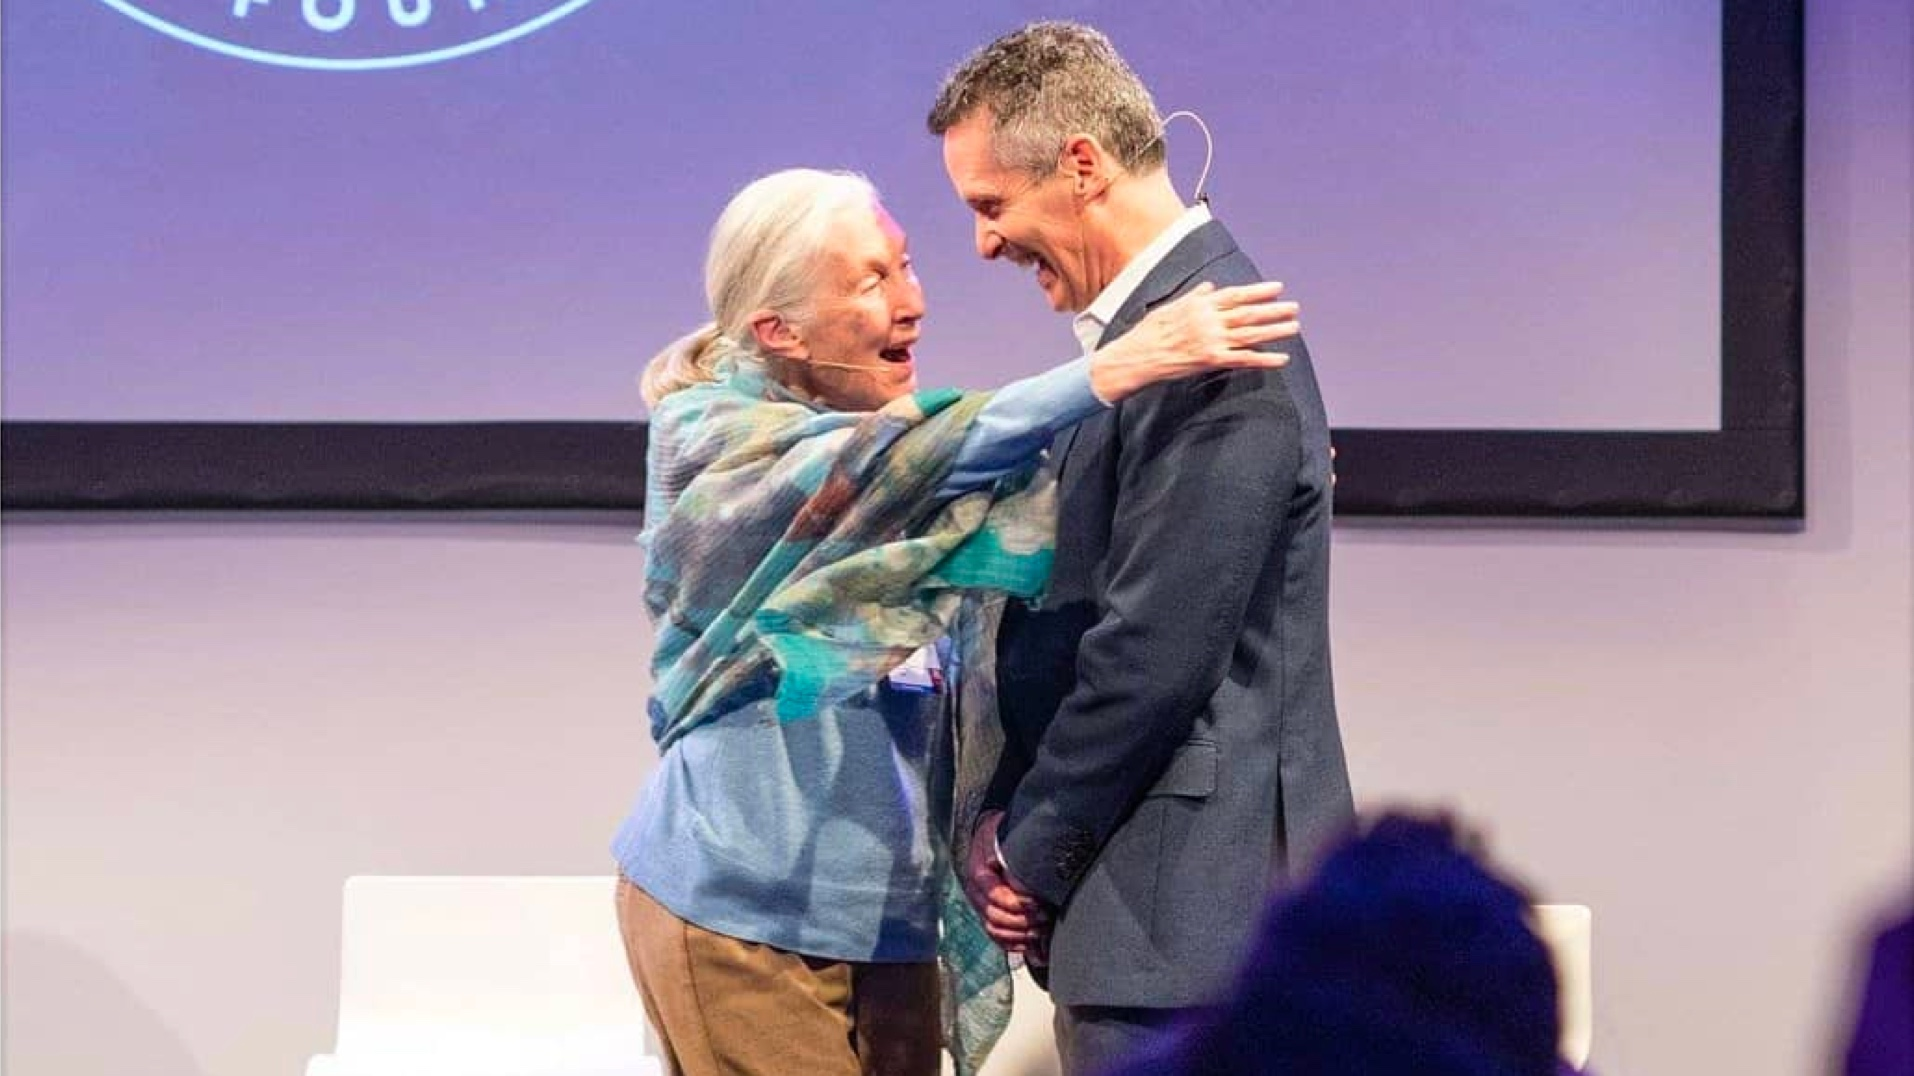 Jane Goodall embracing Dan Springer